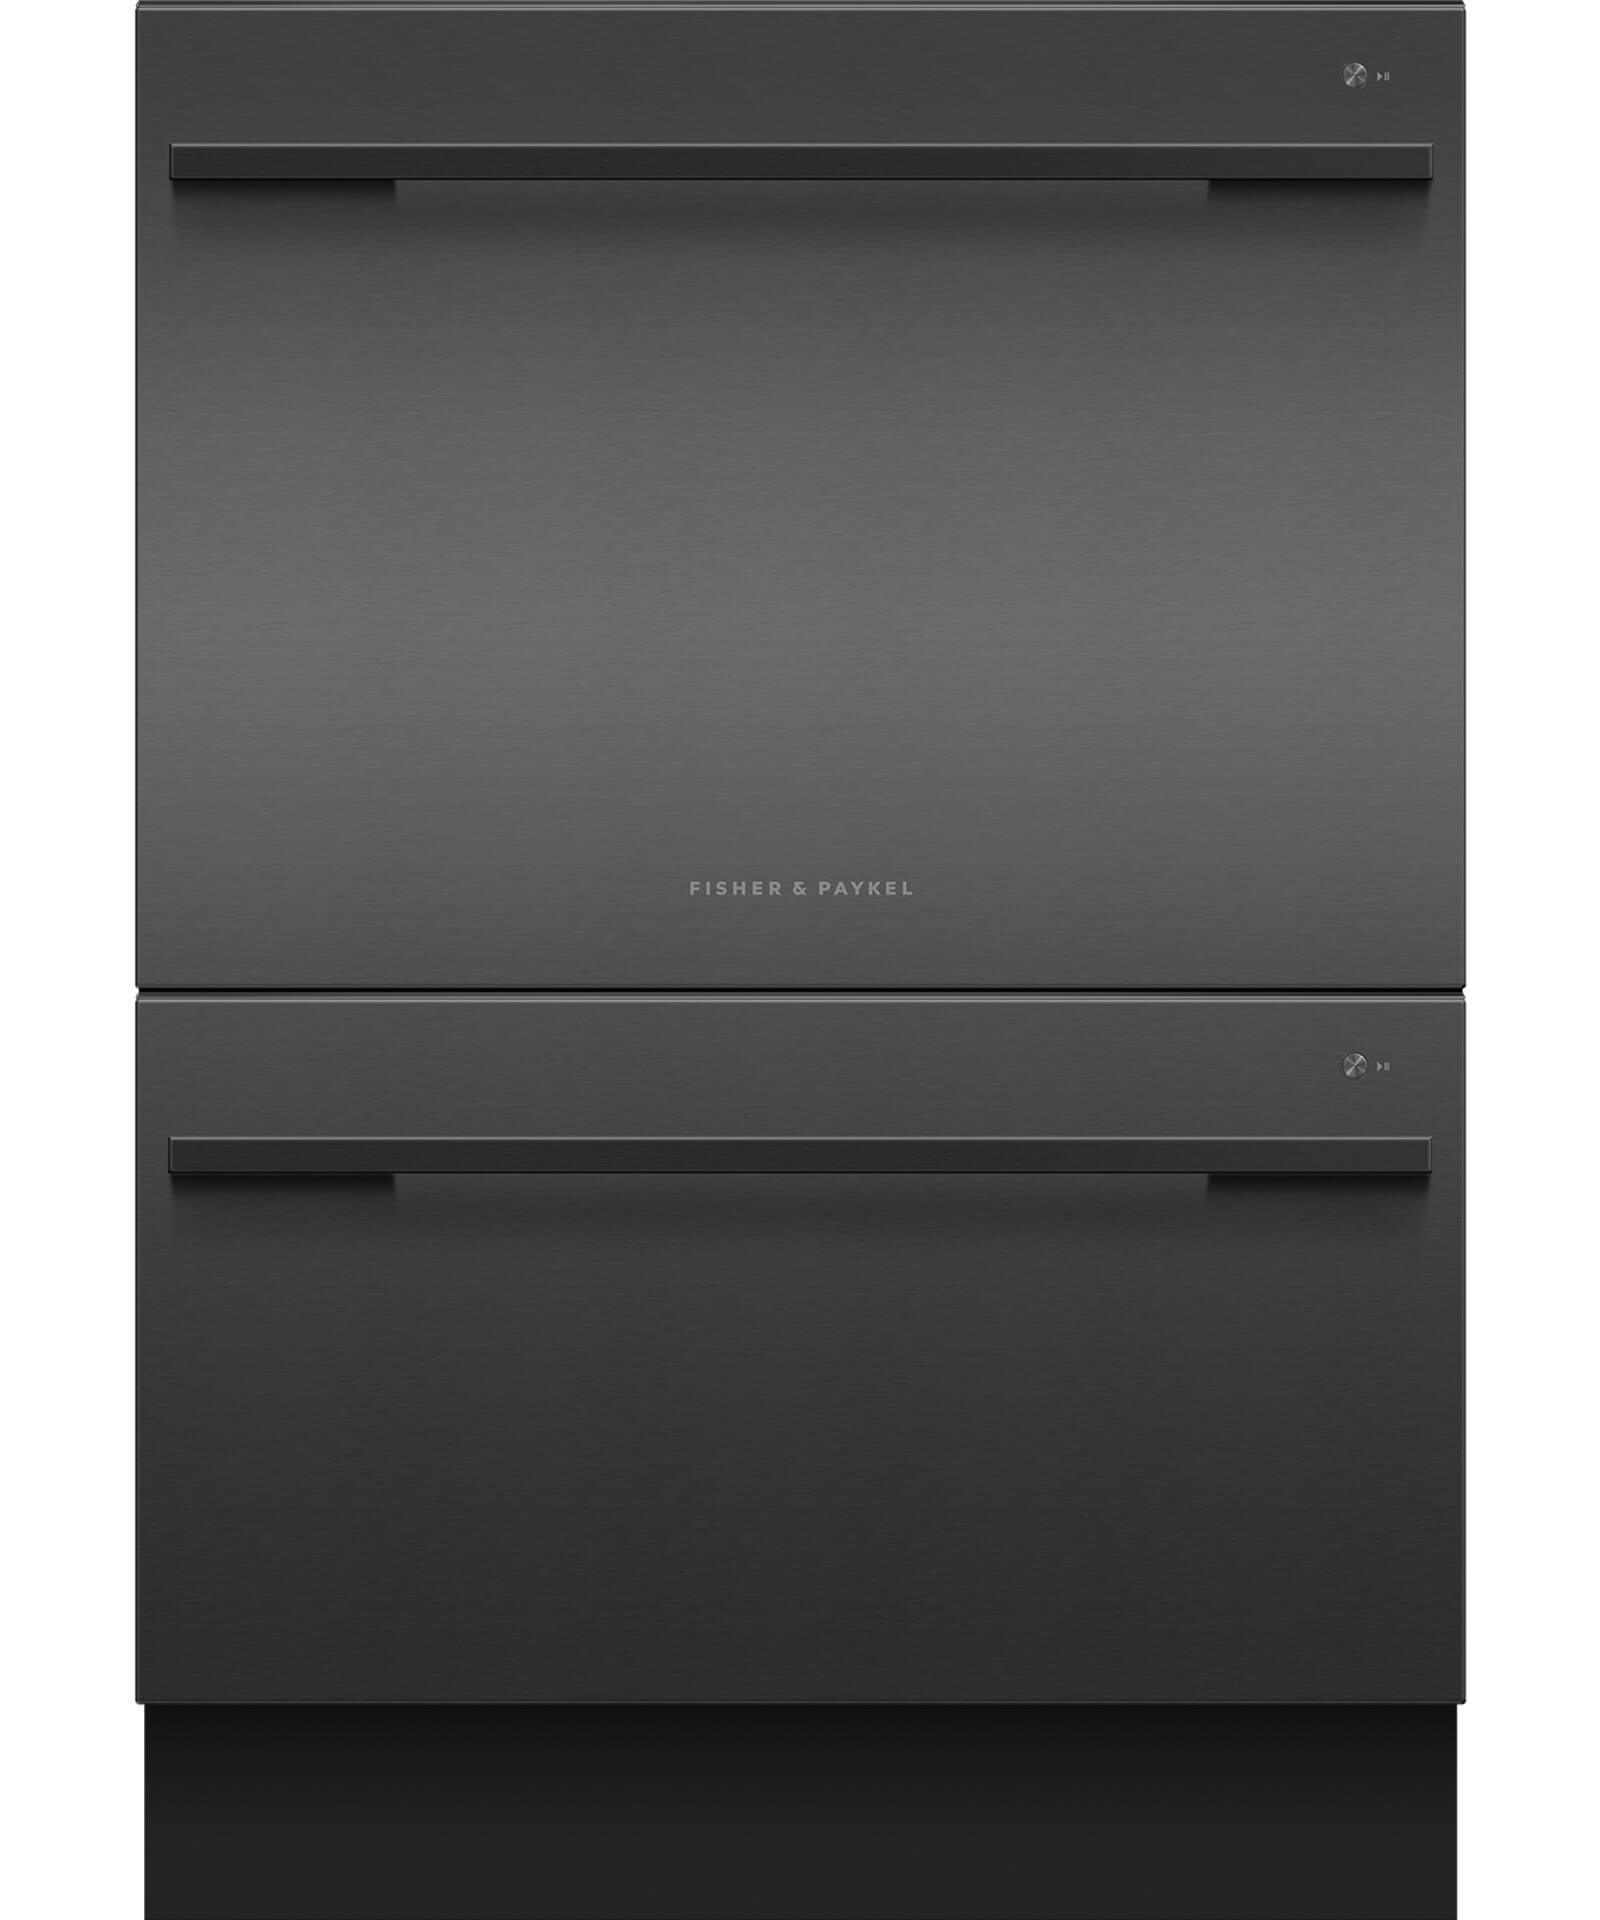 DD24DDFTB9_N - Double DishDrawer, Black - 81834